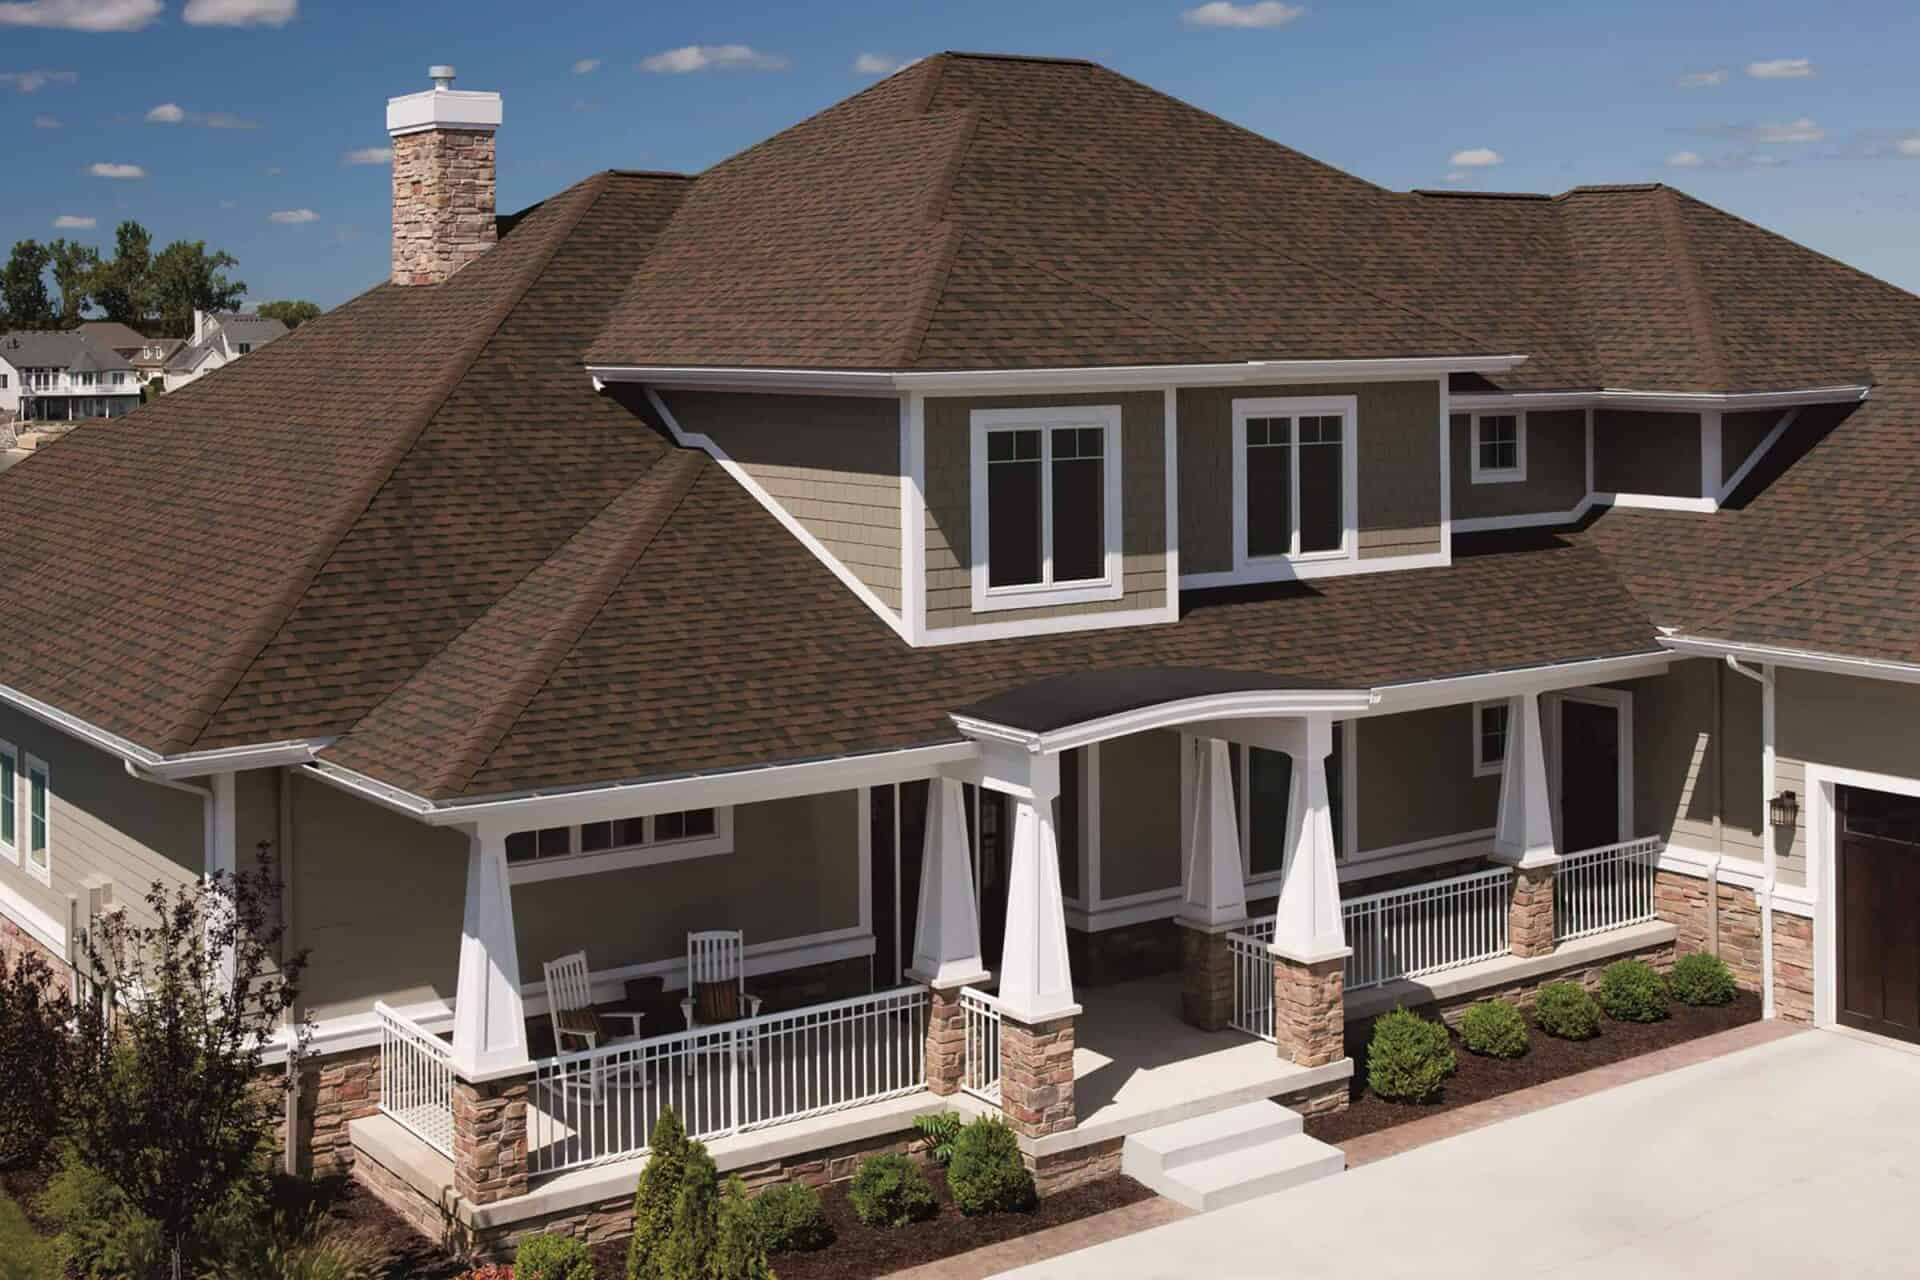 Brownwood Home with Brown Shingled Roof